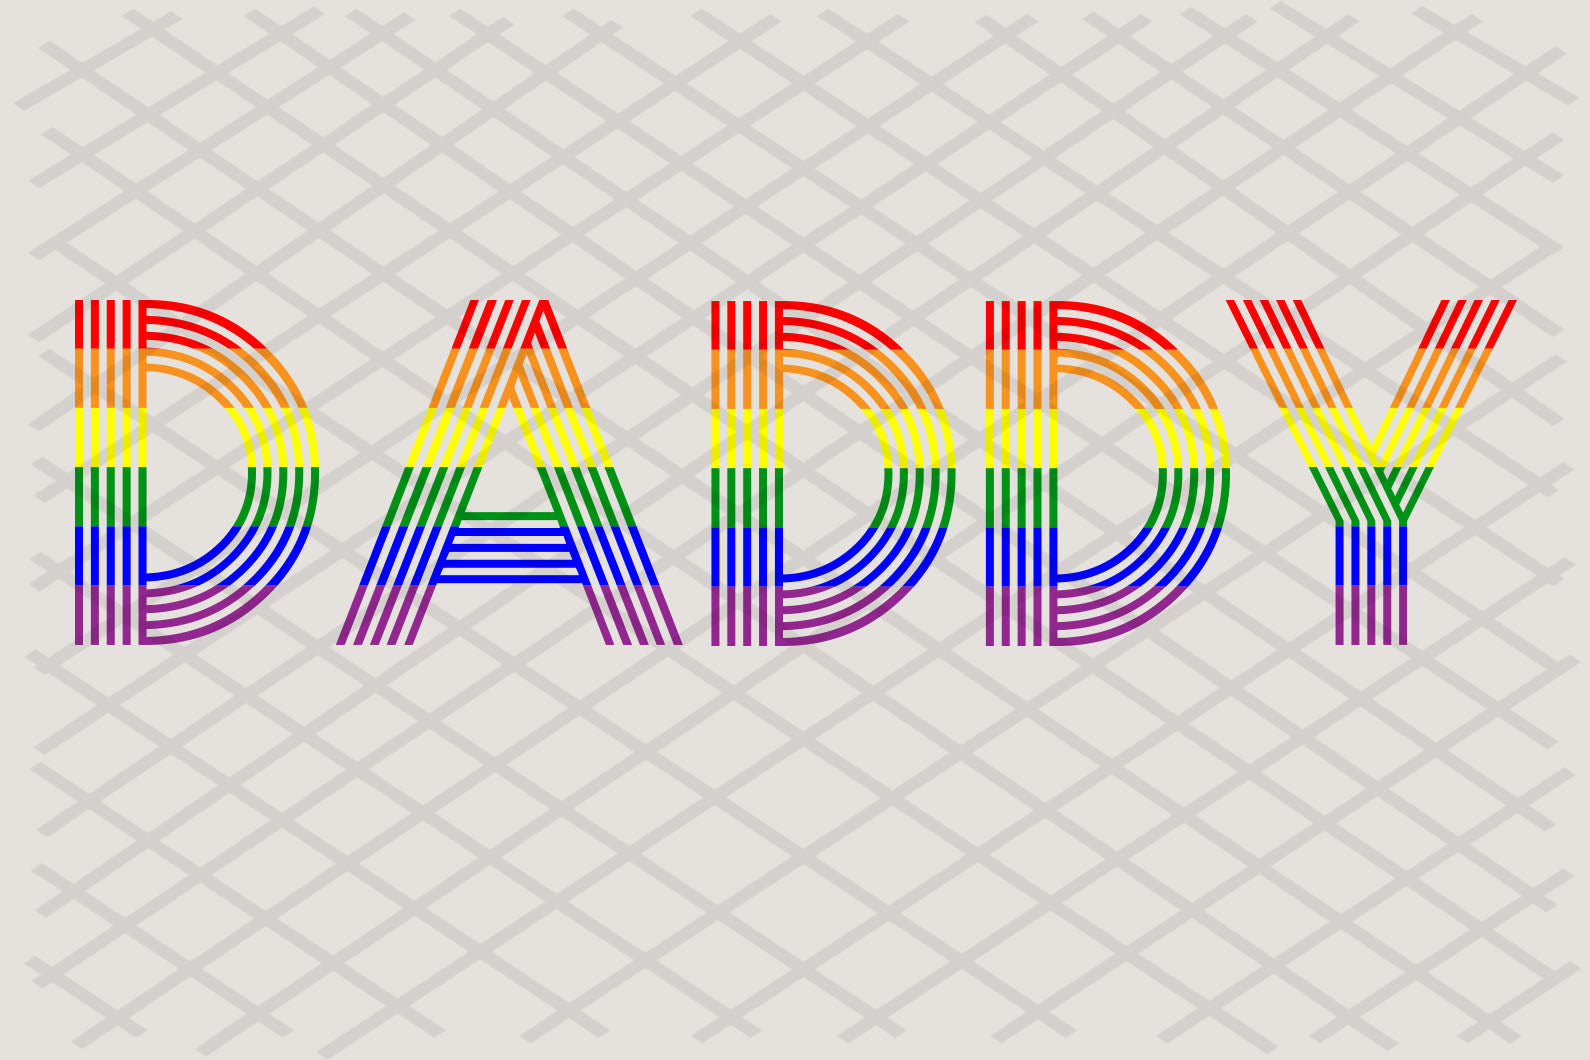 Daddy svg, daddy gift, gift for daddy, best daddy ever, family svg, family shirt,family gift,trending svg, Files For Silhouette, Files For Cricut, SVG, DXF, EPS, PNG, Instant Download